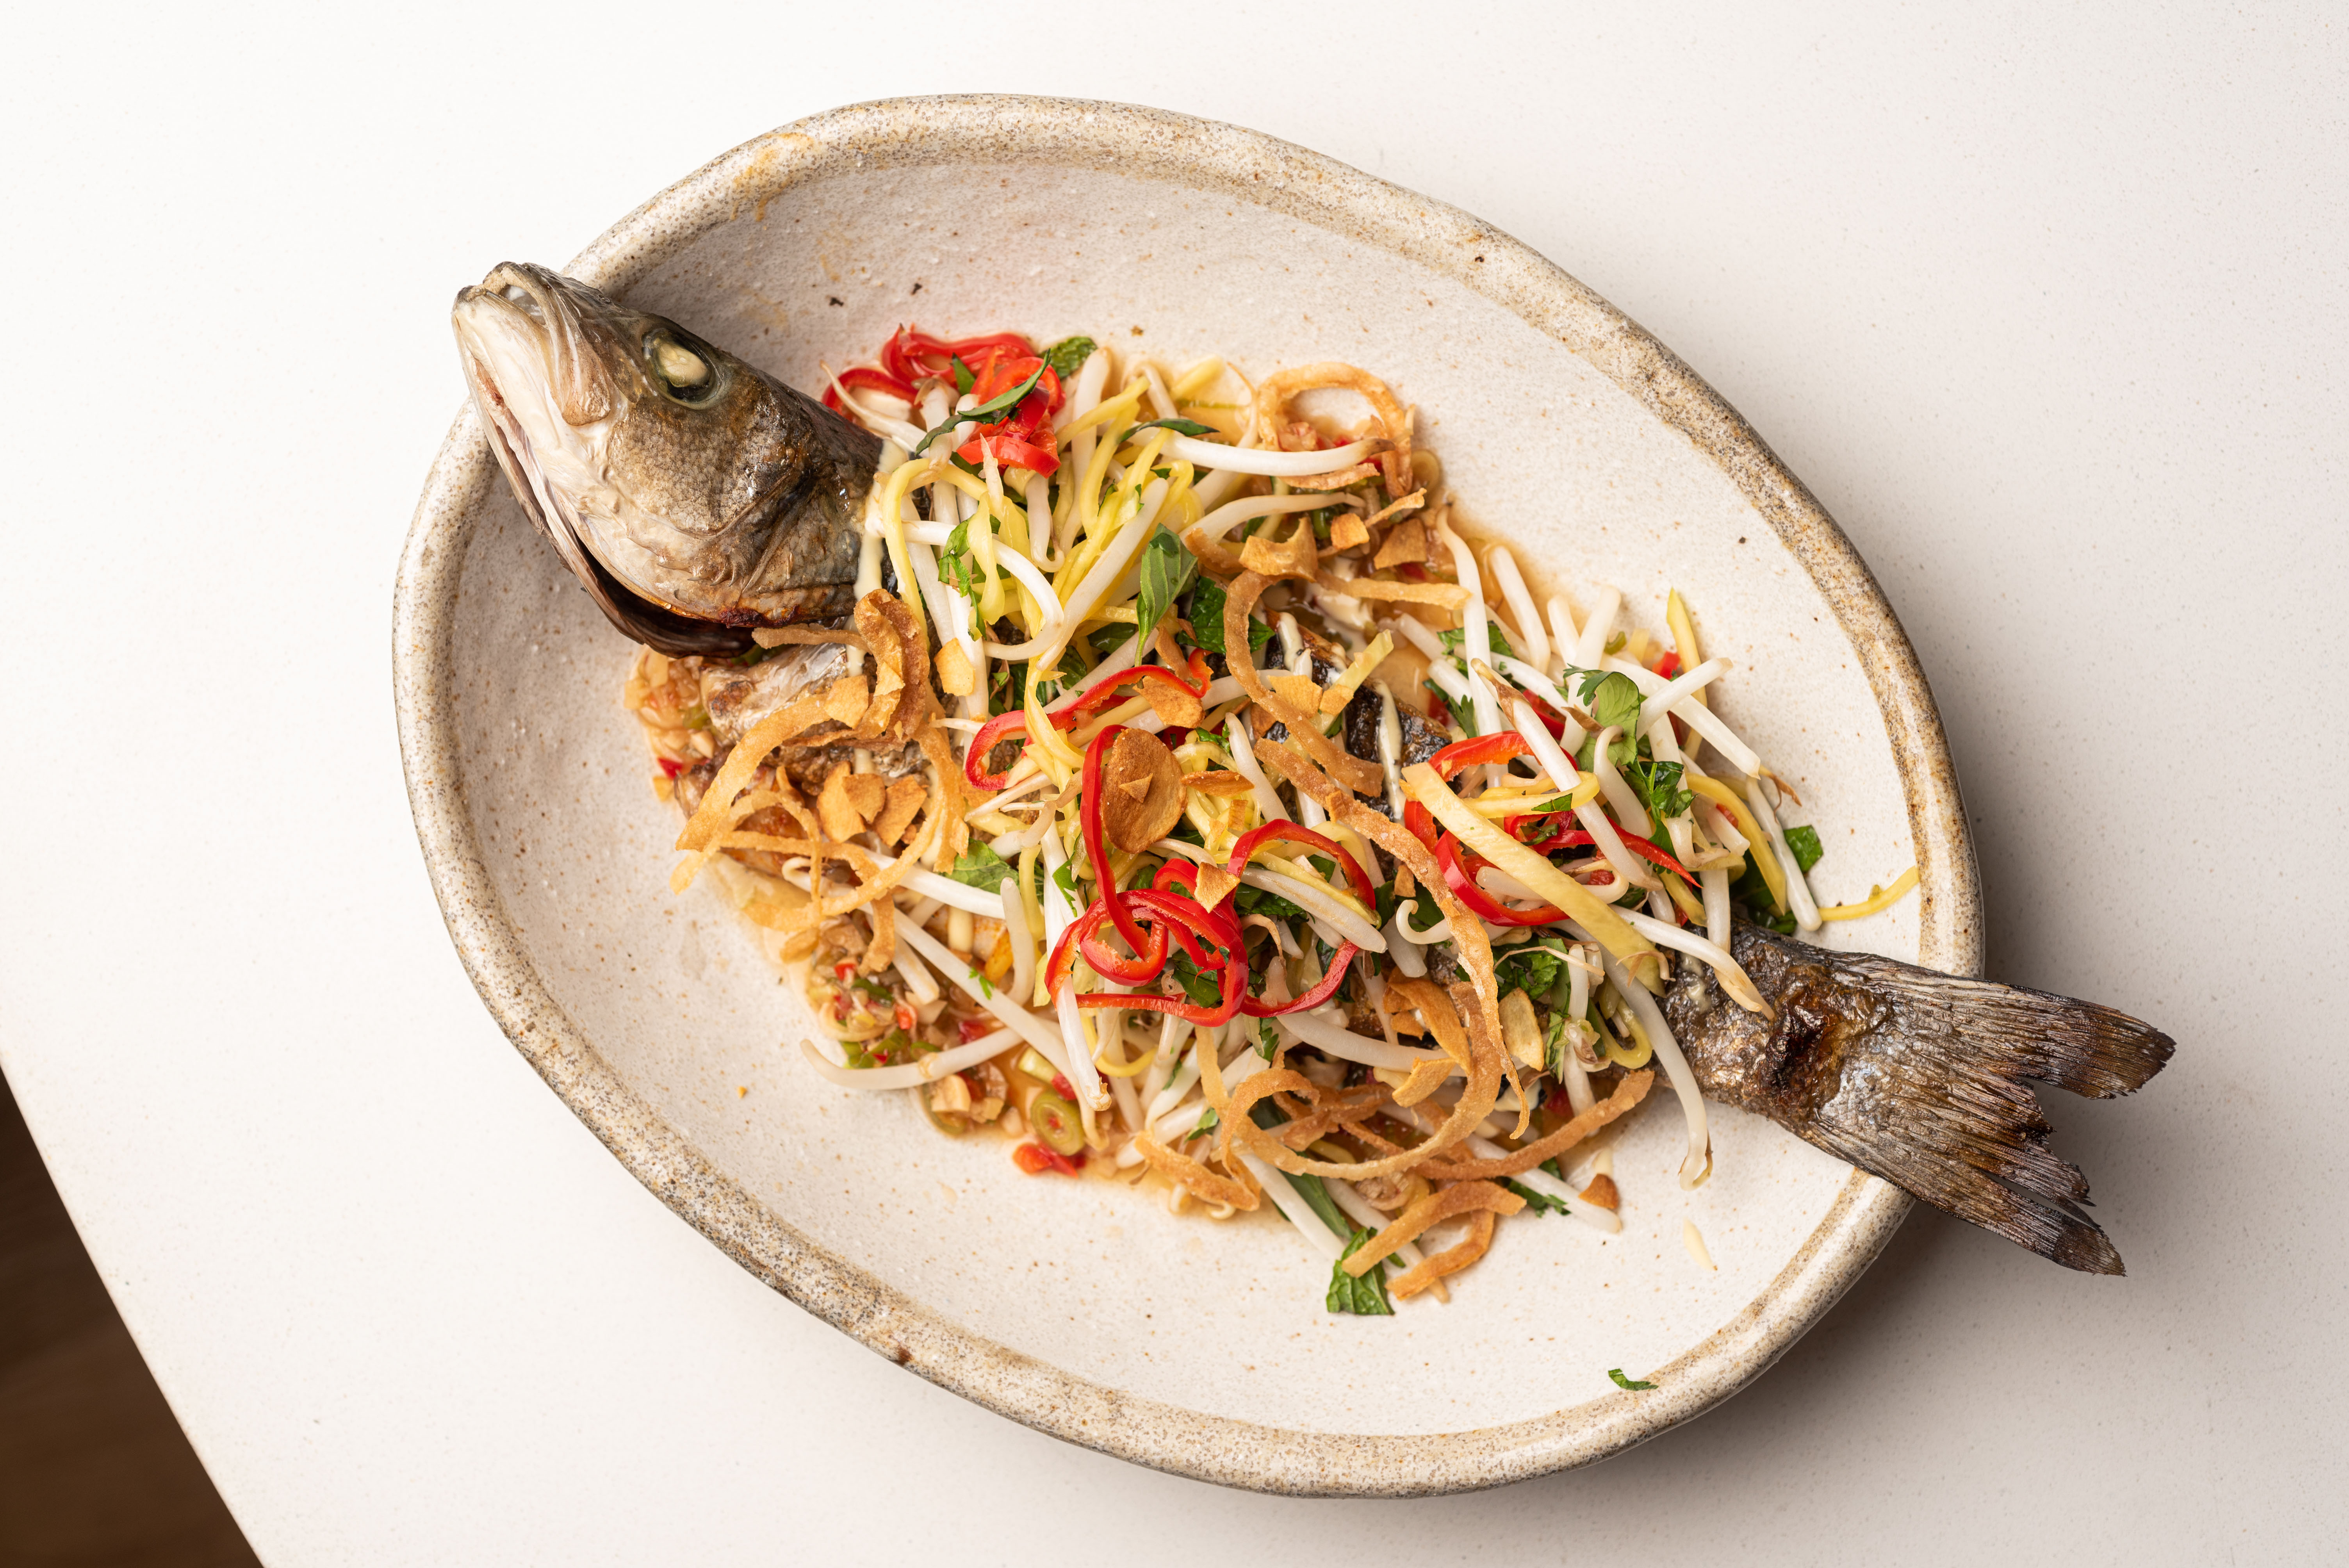 A whole cooked fish topped with shredded vegetables on a ceramic plate.